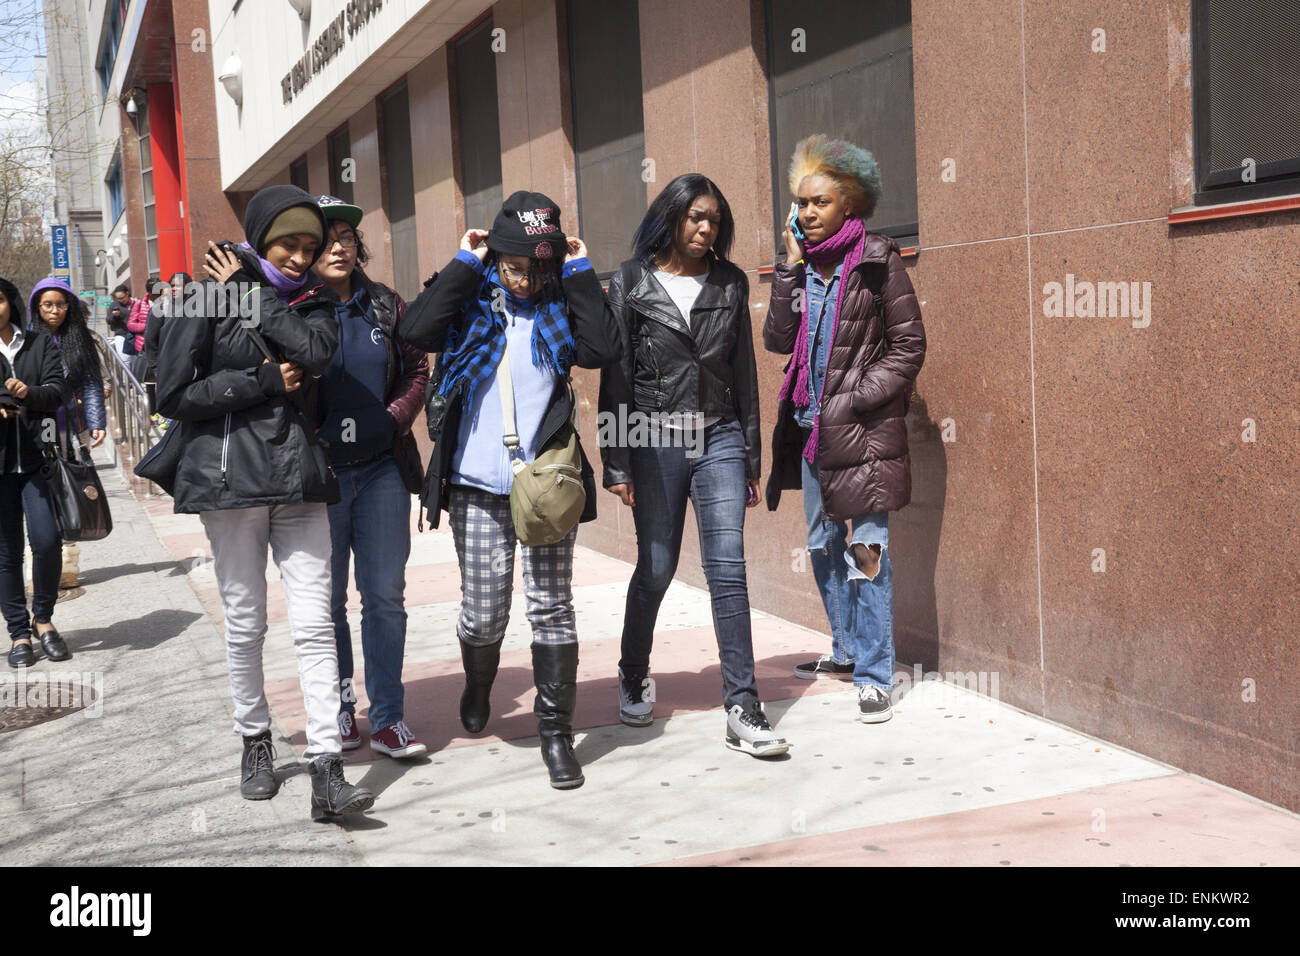 Teenage girls walking home after school in downtown Brooklyn, NY. - Stock Image